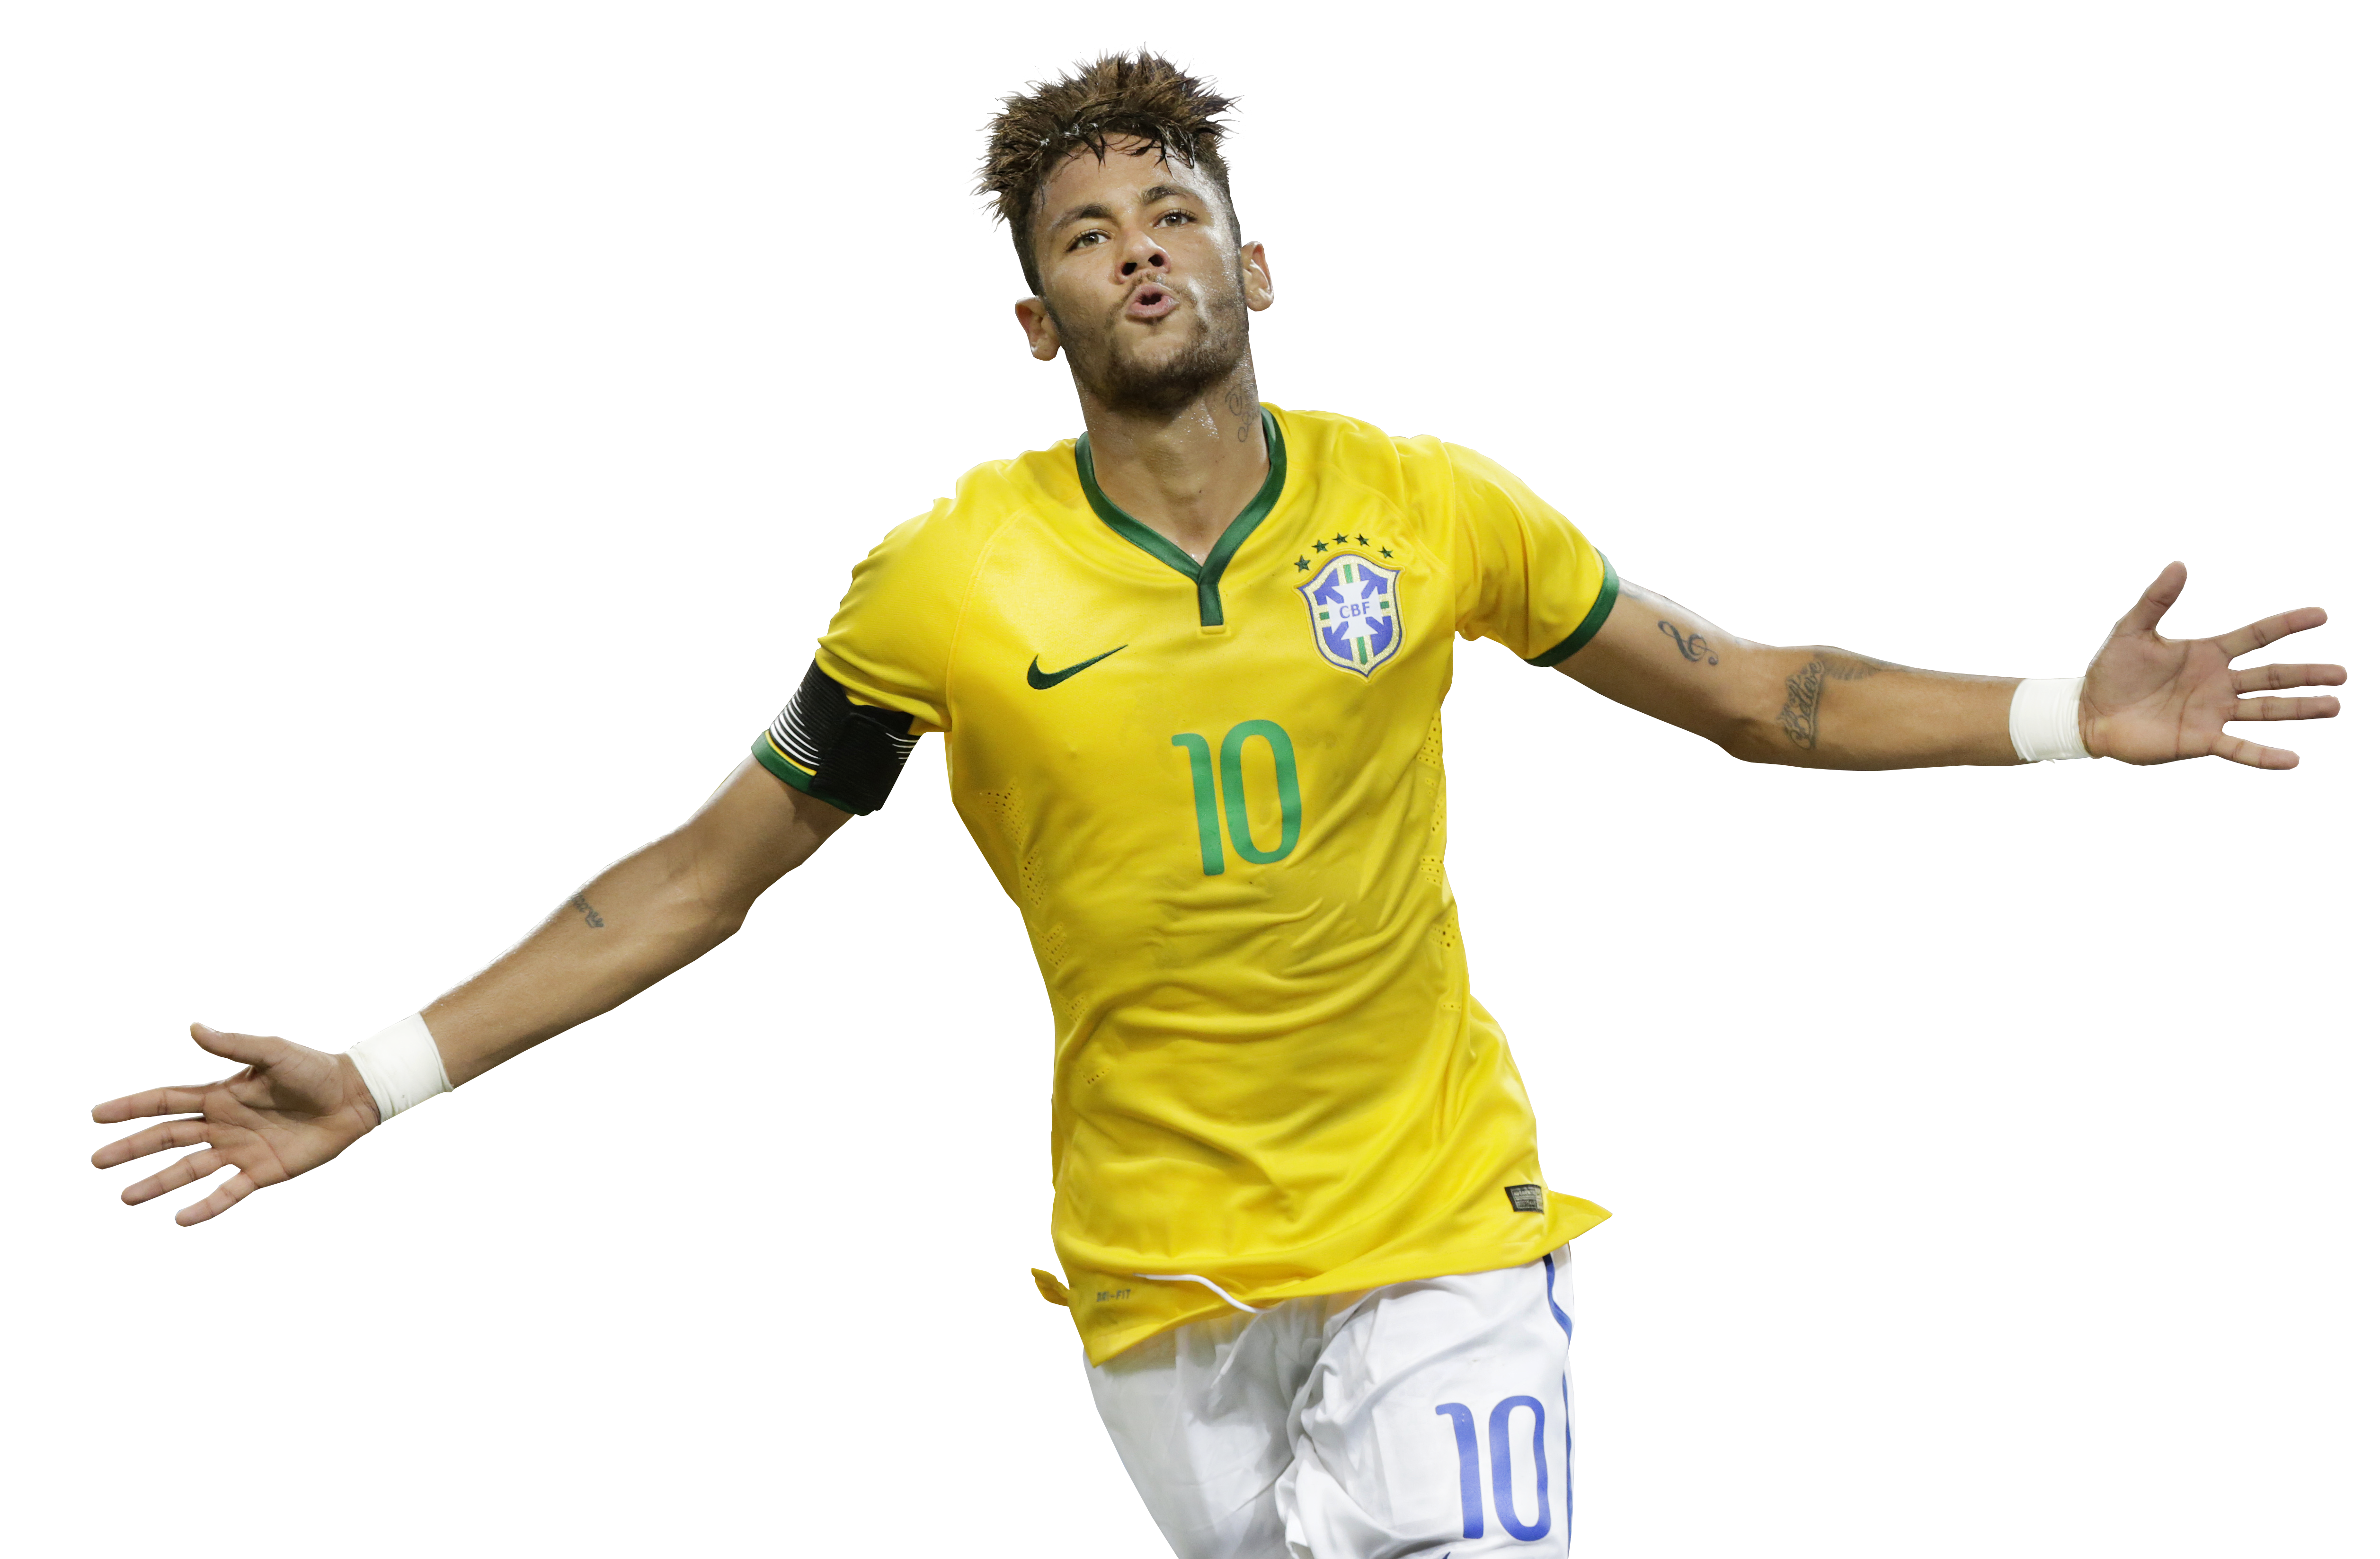 Neymar Clipart at GetDrawings.com.